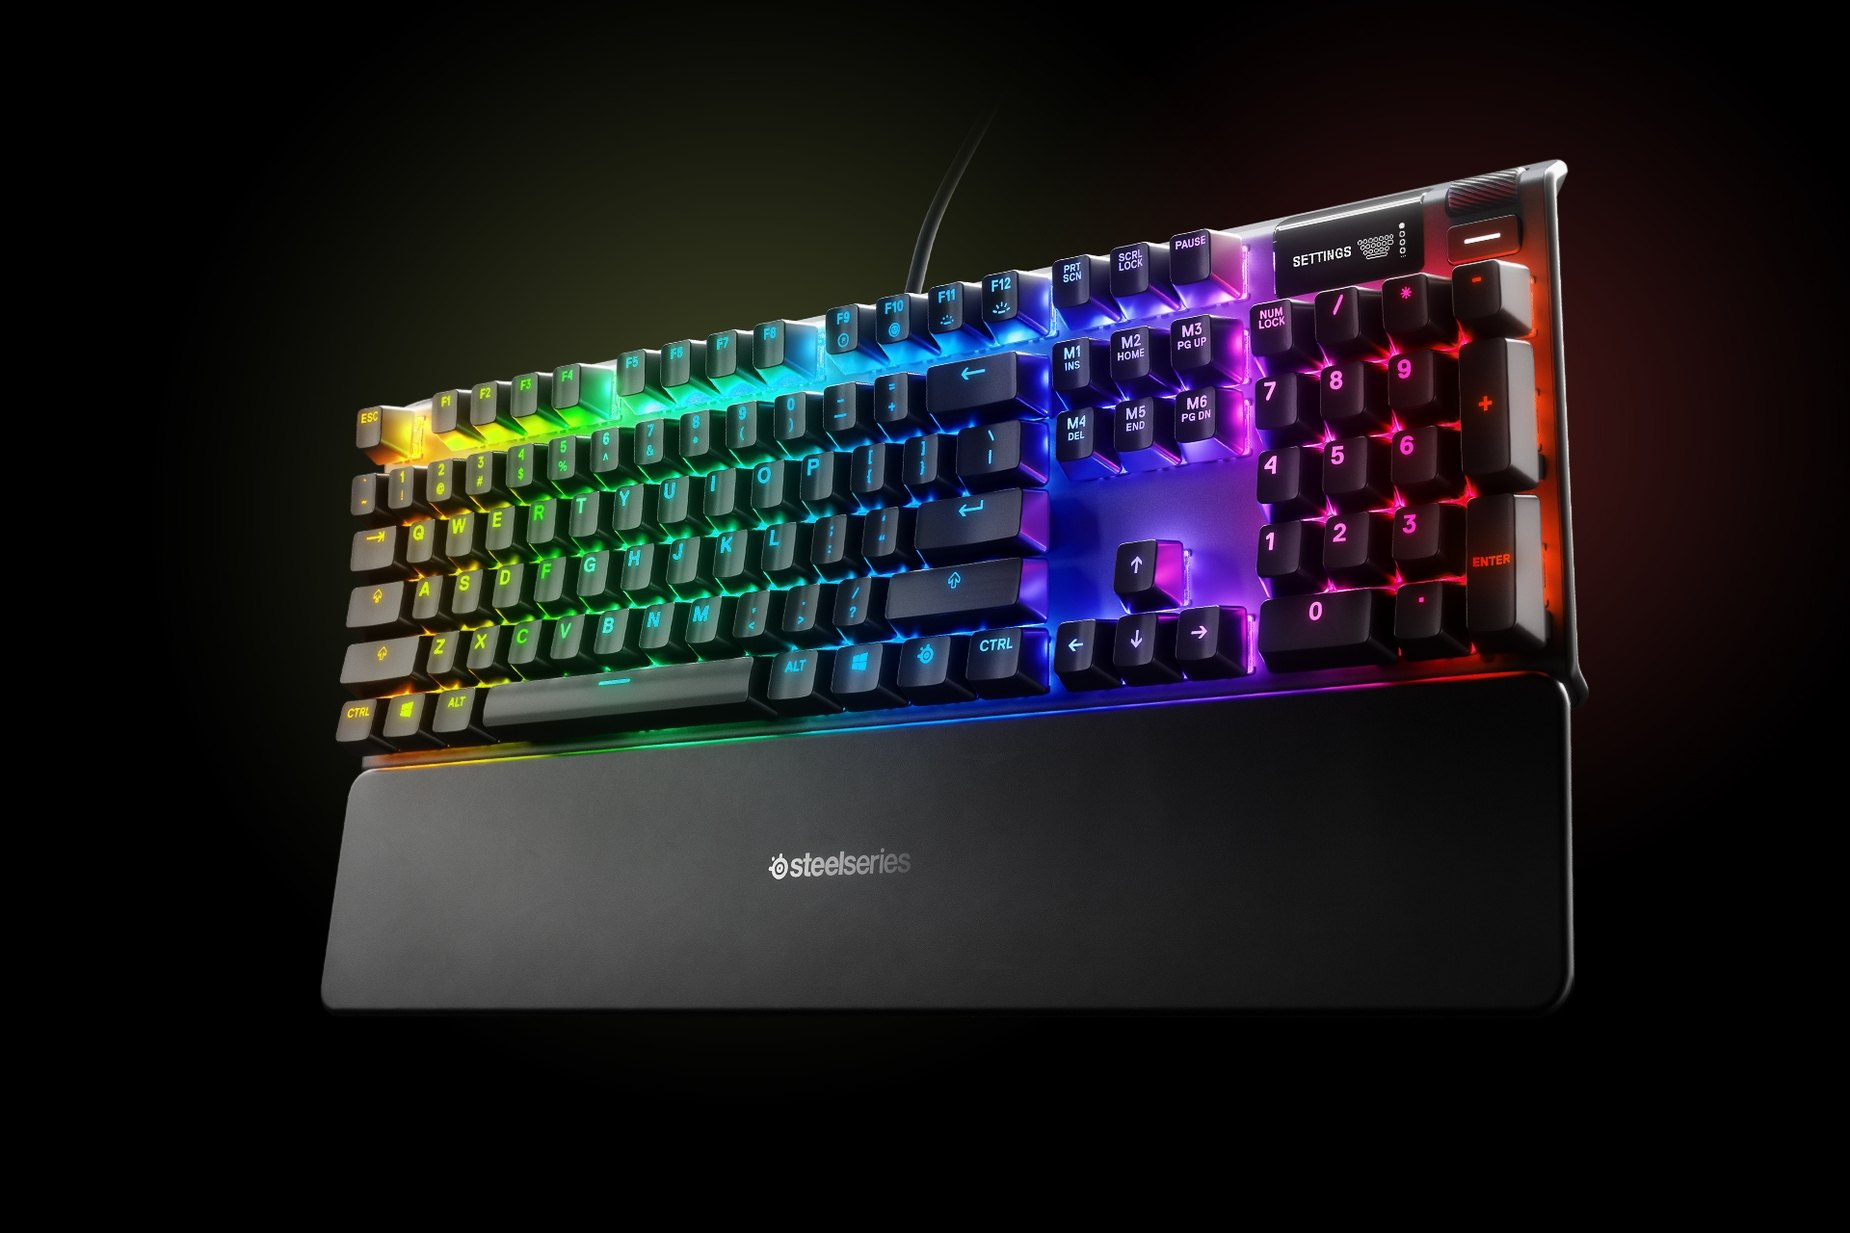 German - Apex 7 (Blue Switch) gaming keyboard with the illumination lit up on dark background, also shows the OLED screen and controls used to change settings and adjust audio